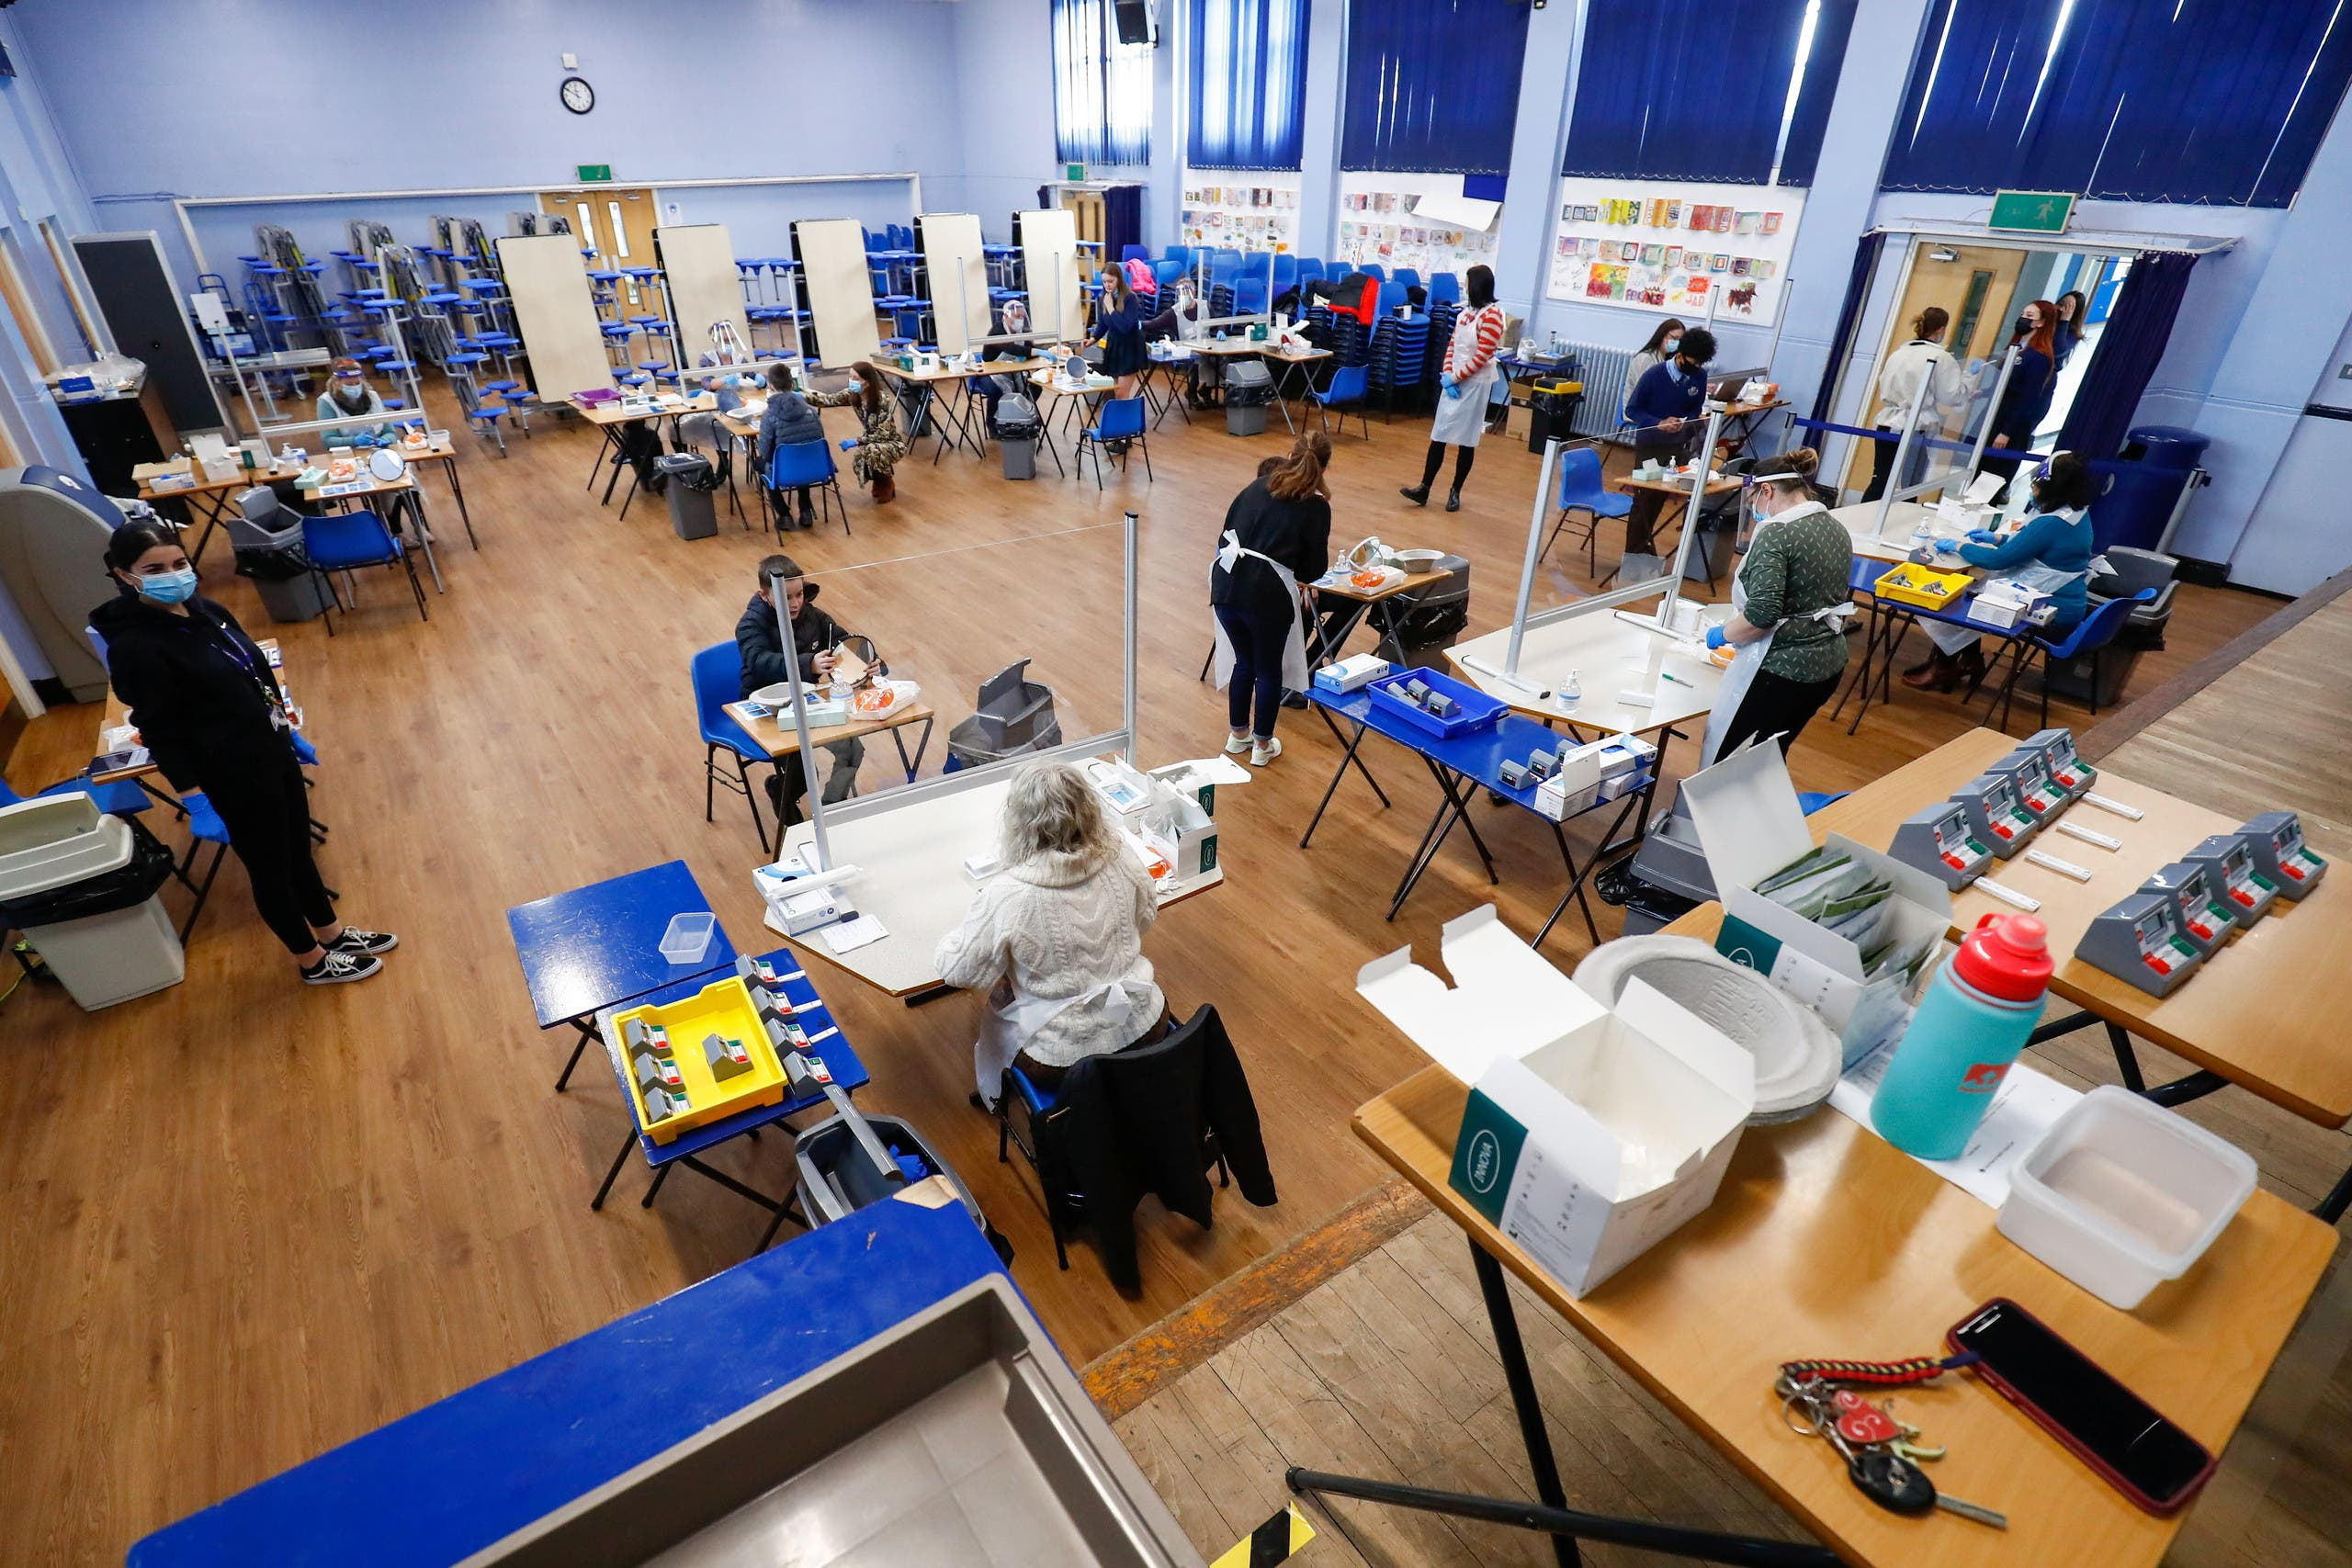 Students take lateral flow tests as health workers supervise at Weaverham High School, as the coronavirus disease (COVID-19) lockdown begins to ease, in Cheshire, Britain, March 9, 2021. (Reuters)